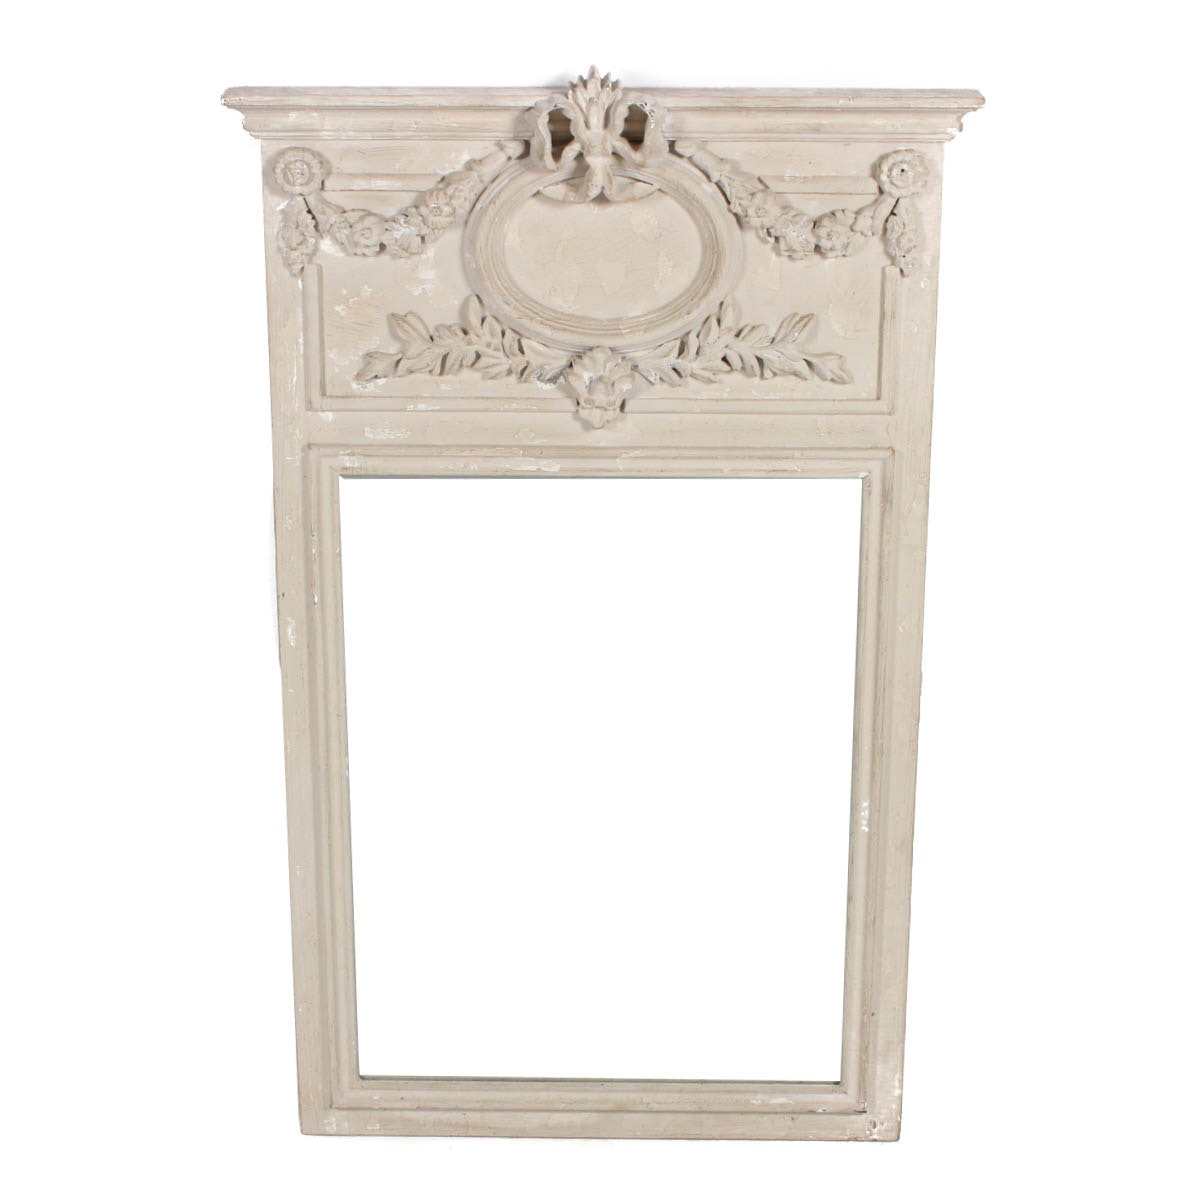 Decorative Distressed Finished Wall Mirror